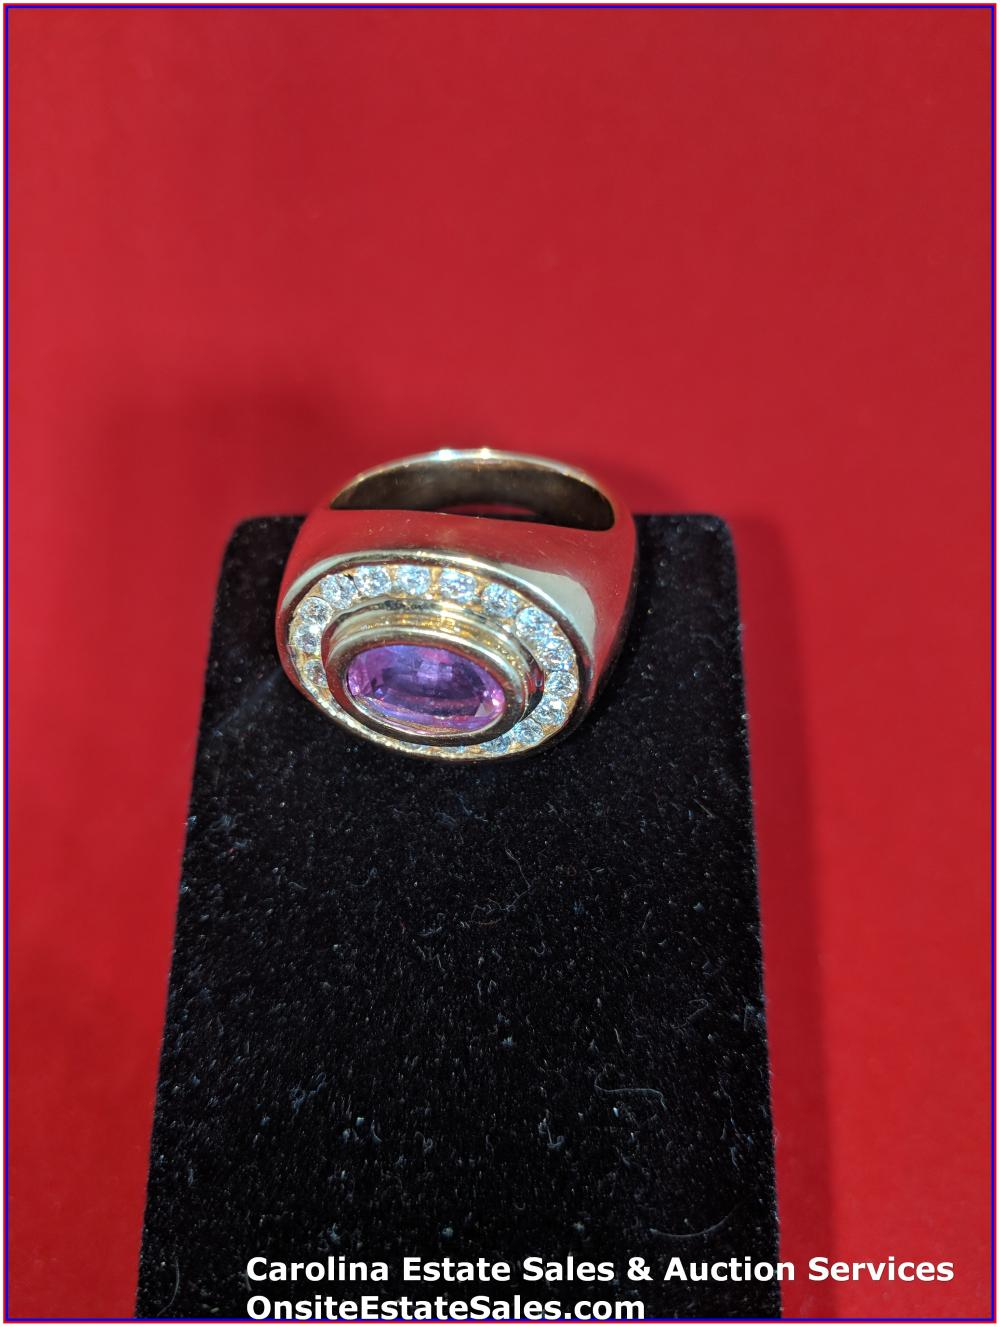 14K Gem Ring Gold 14 Grams Total Weight; 2.70 ct Pink Saphire with .90 ct Diamonds